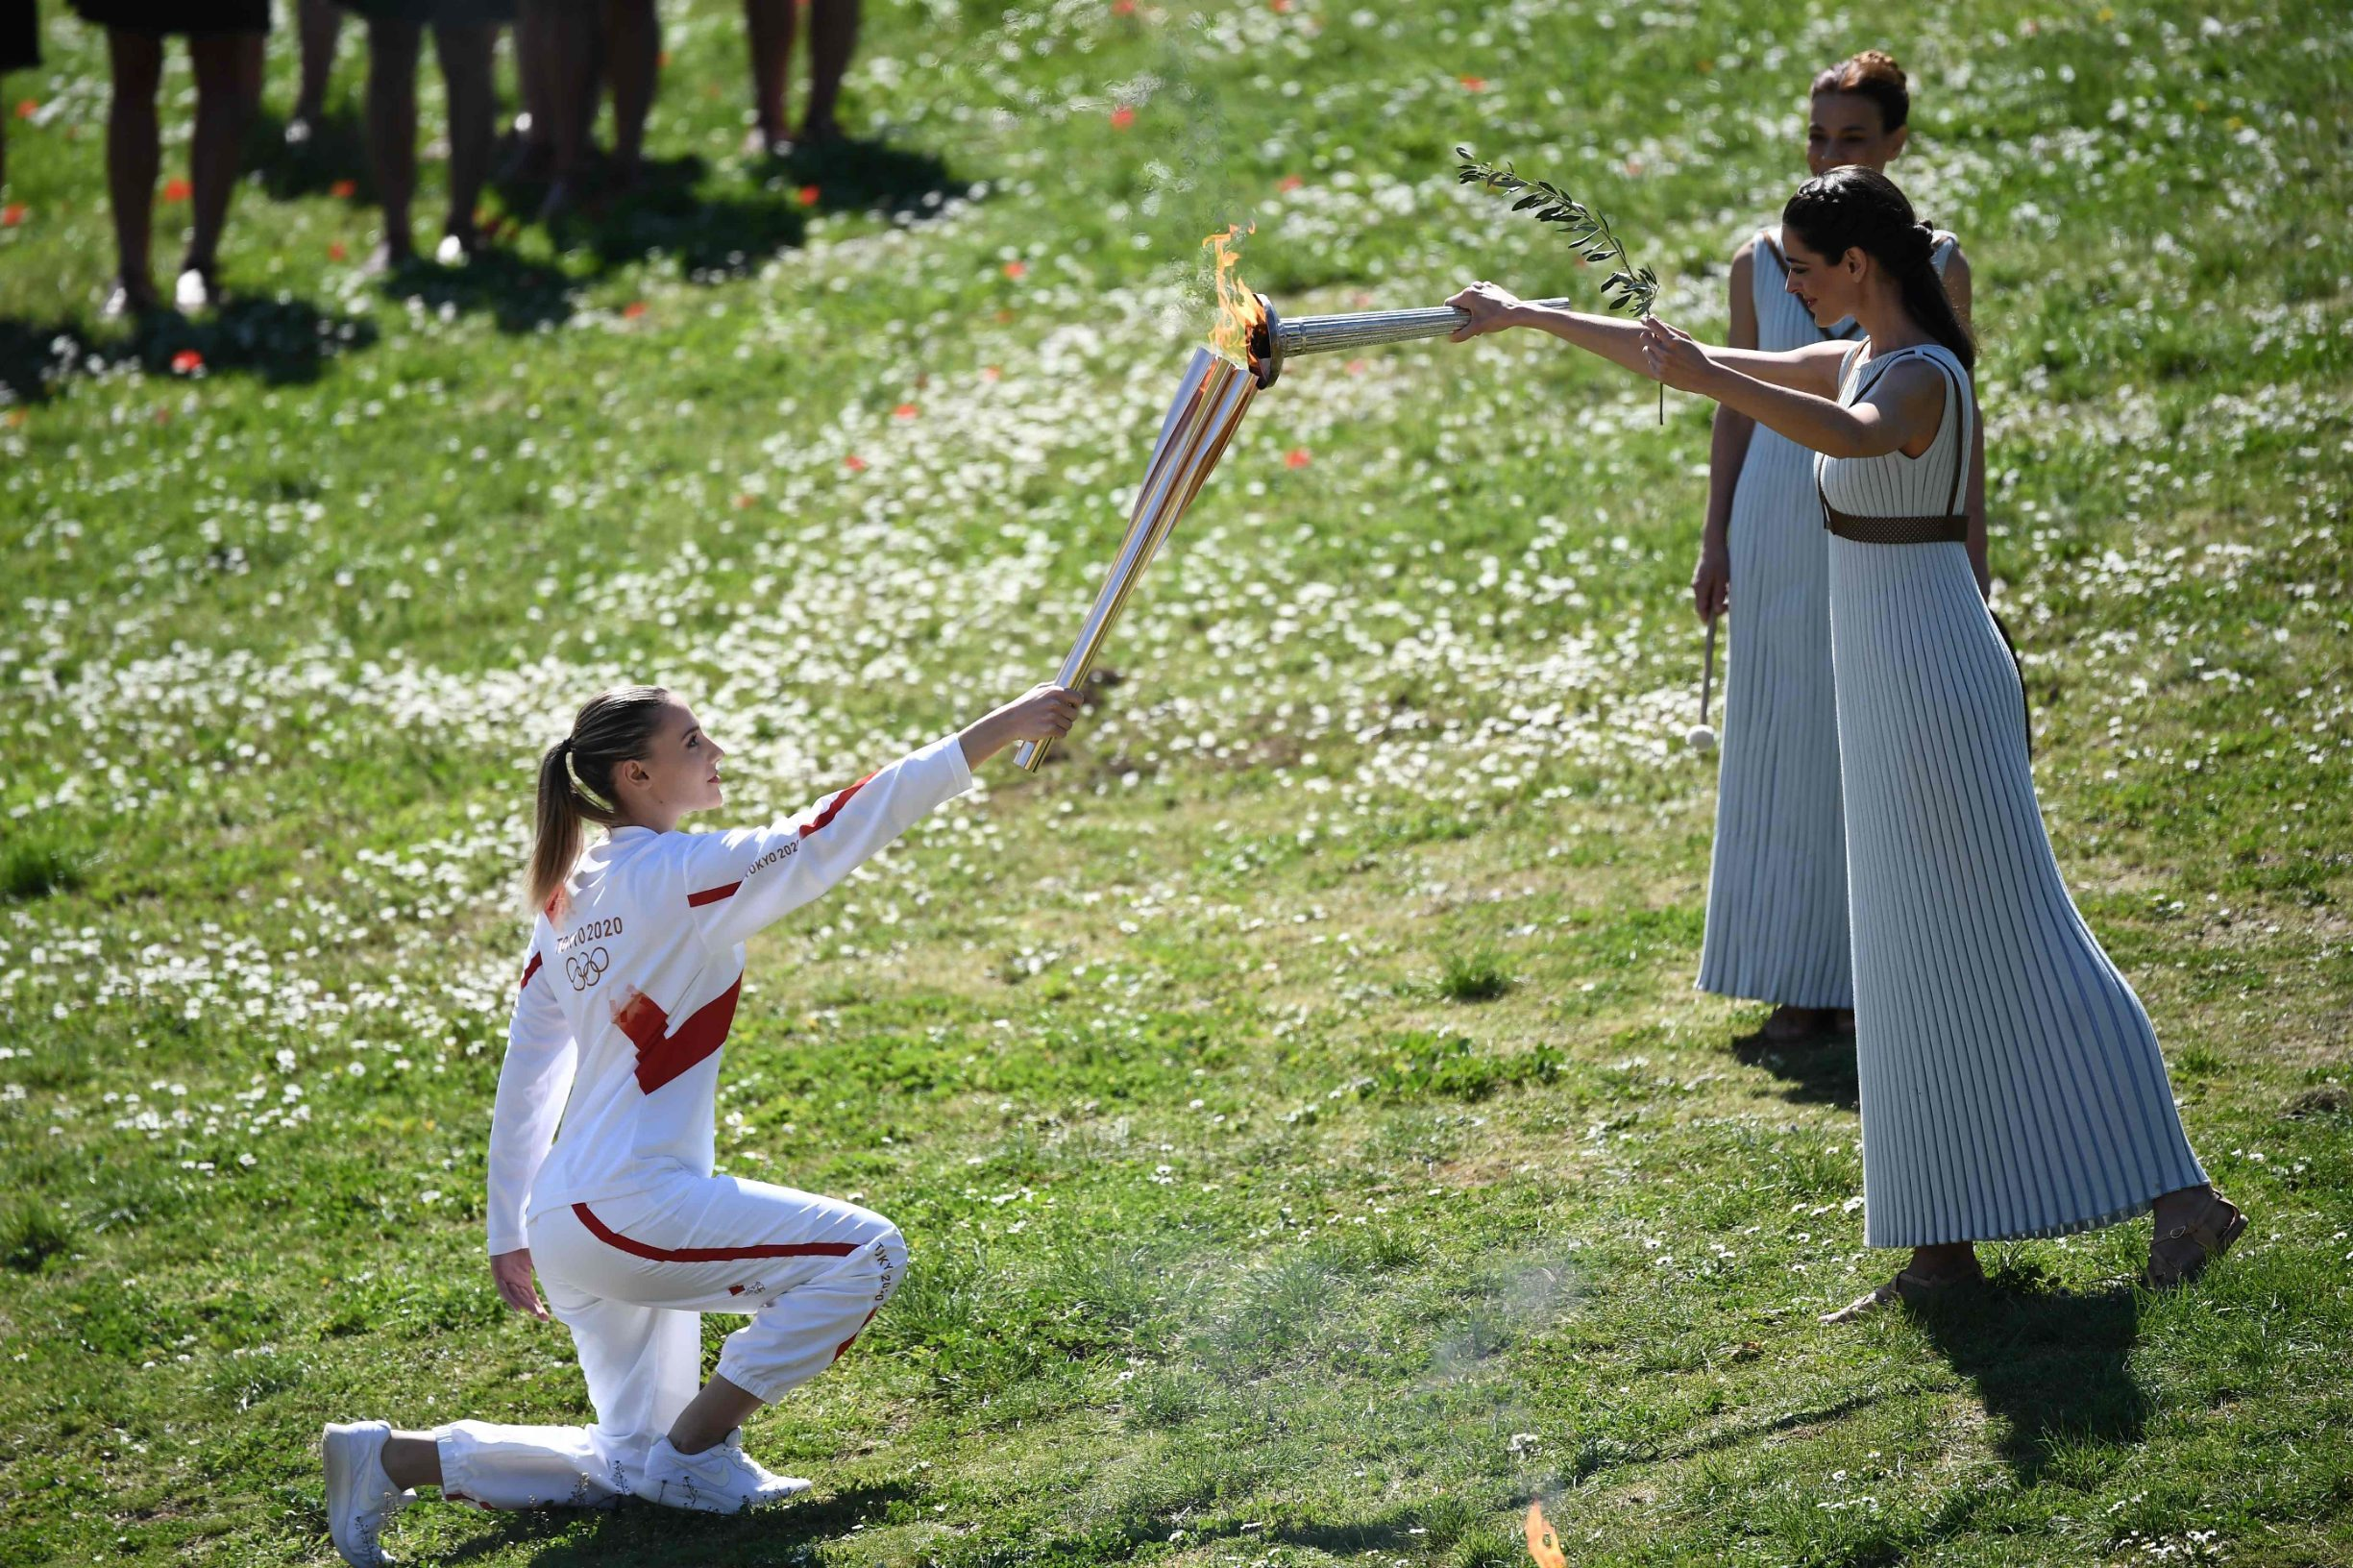 Torchbearer Greece's Anna Korakaki (L), Rio 2016 gold medallist in the 25m pistol shooting, receives the Olympic flame during the flame lighting ceremony on March 12, 2020 in ancient Olympia, ahead of the Tokyo 2020 Olympic Games. (Photo by ARIS MESSINIS / AFP)